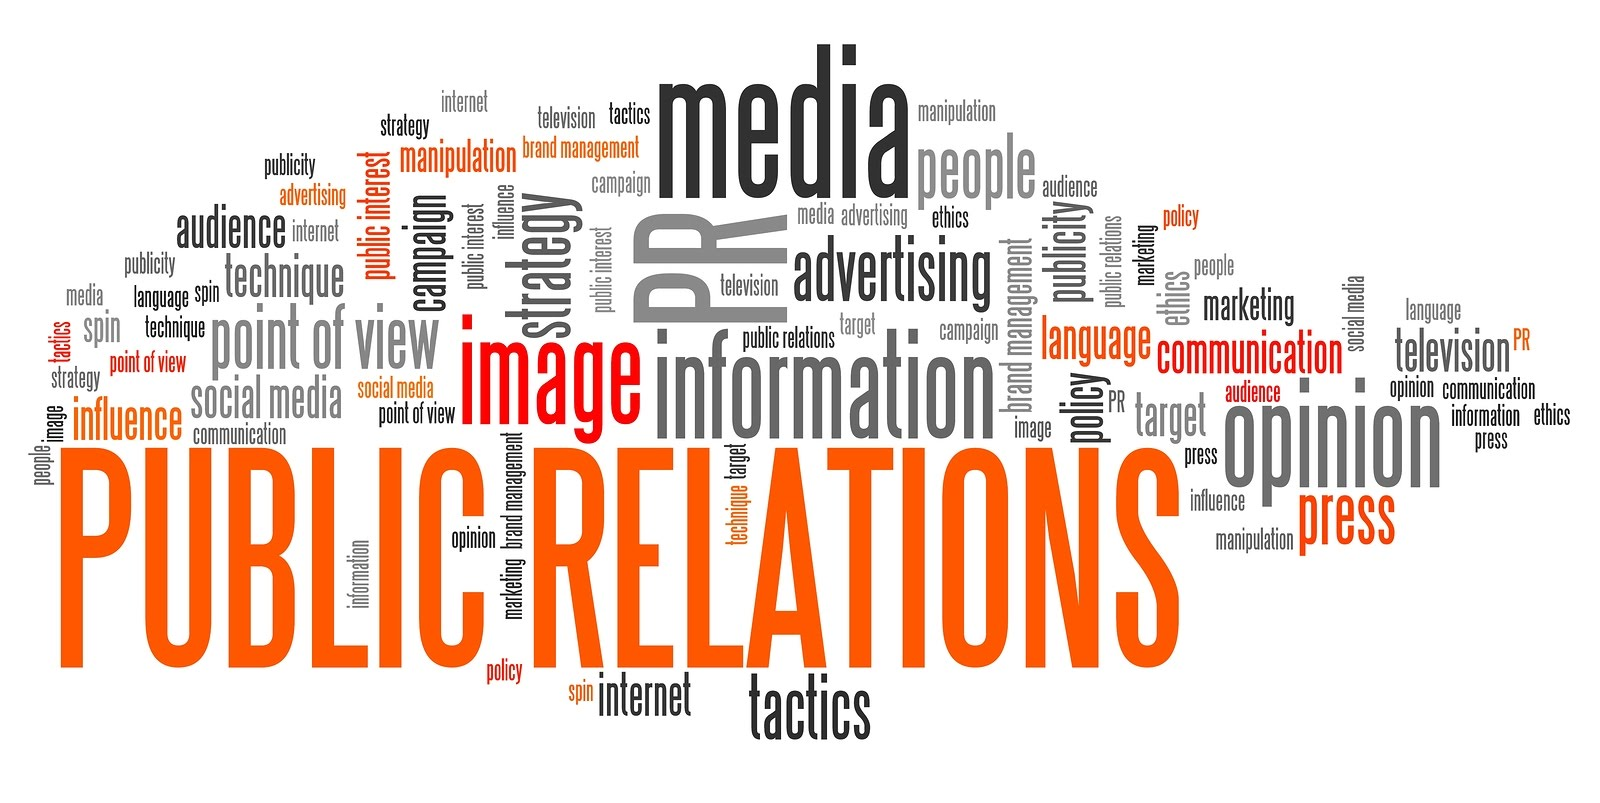 Terms relating to Public Relations